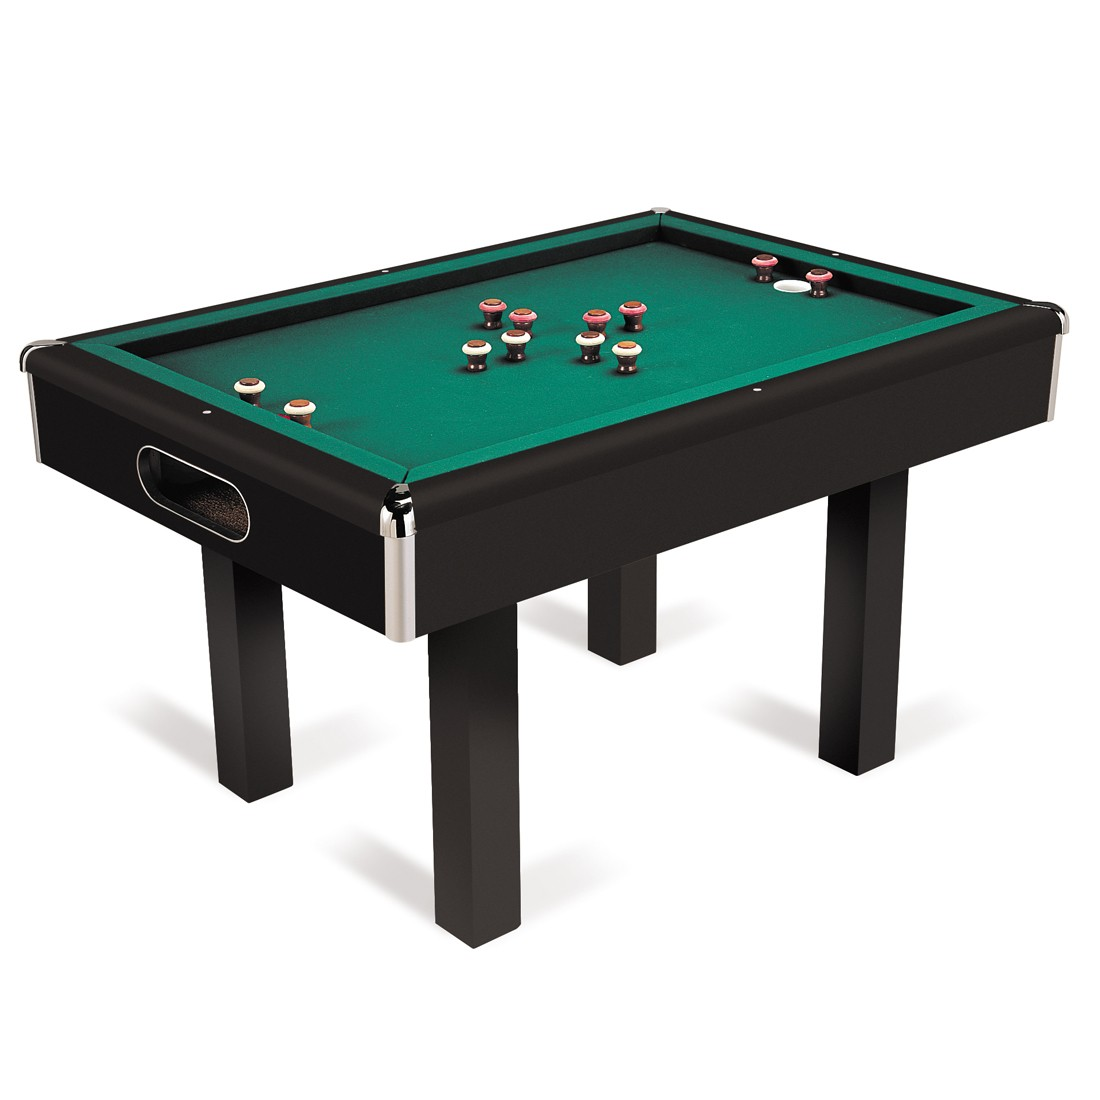 Non slate bumper pool table - Photos of pool tables ...